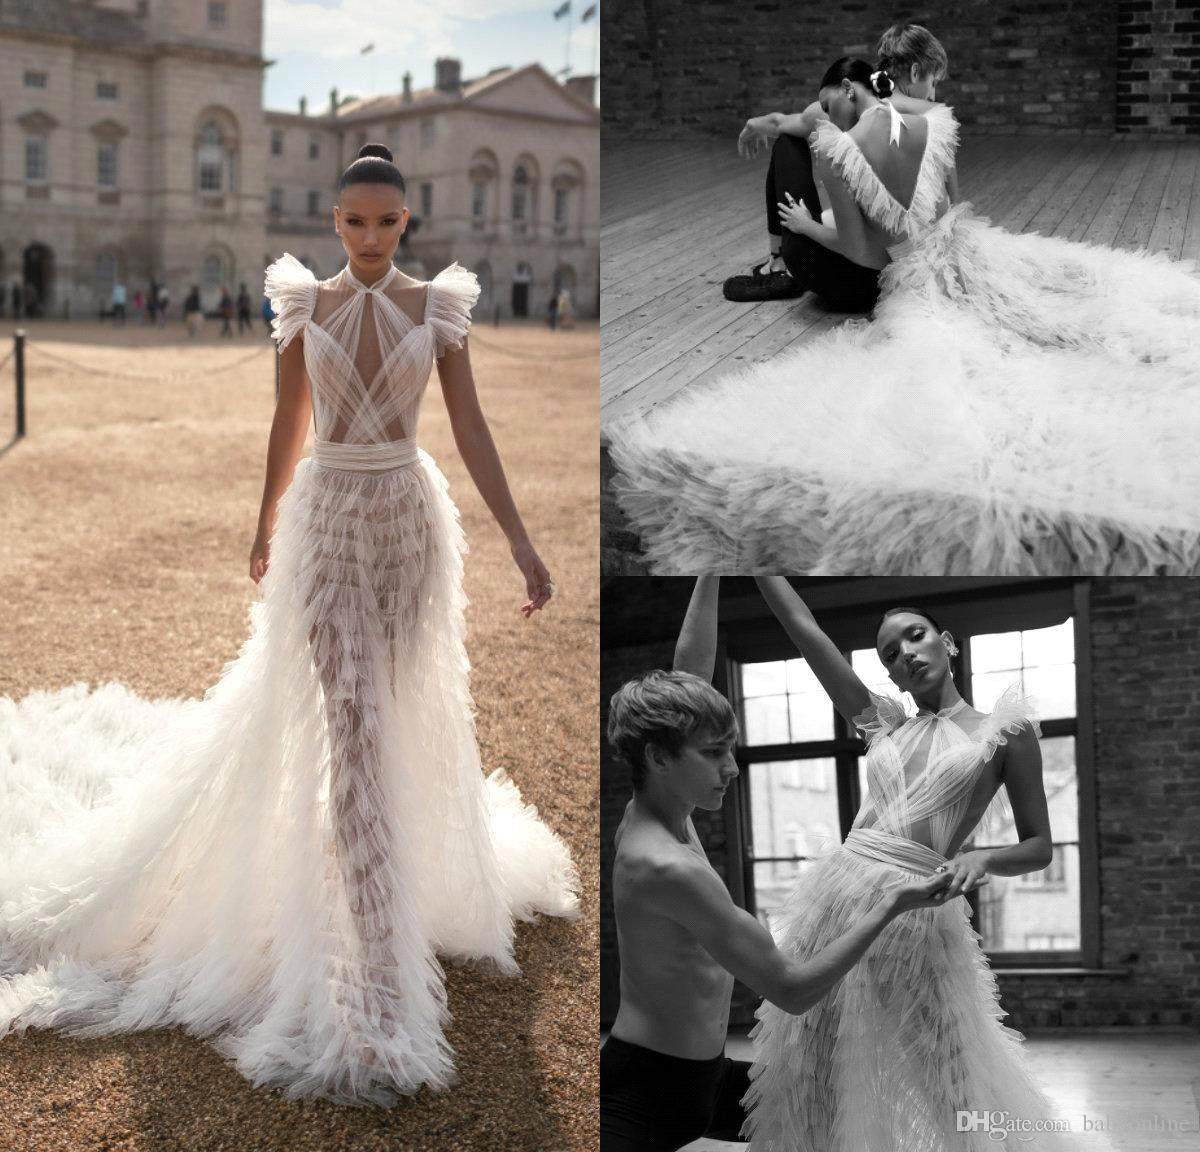 2019 Lior Charchy Bohemian Wedding Dresses Halter Tiered Skirts Ruffle Illusion Sexy Backless Bridal Gowns Sweep Train Beach Wedding Dress